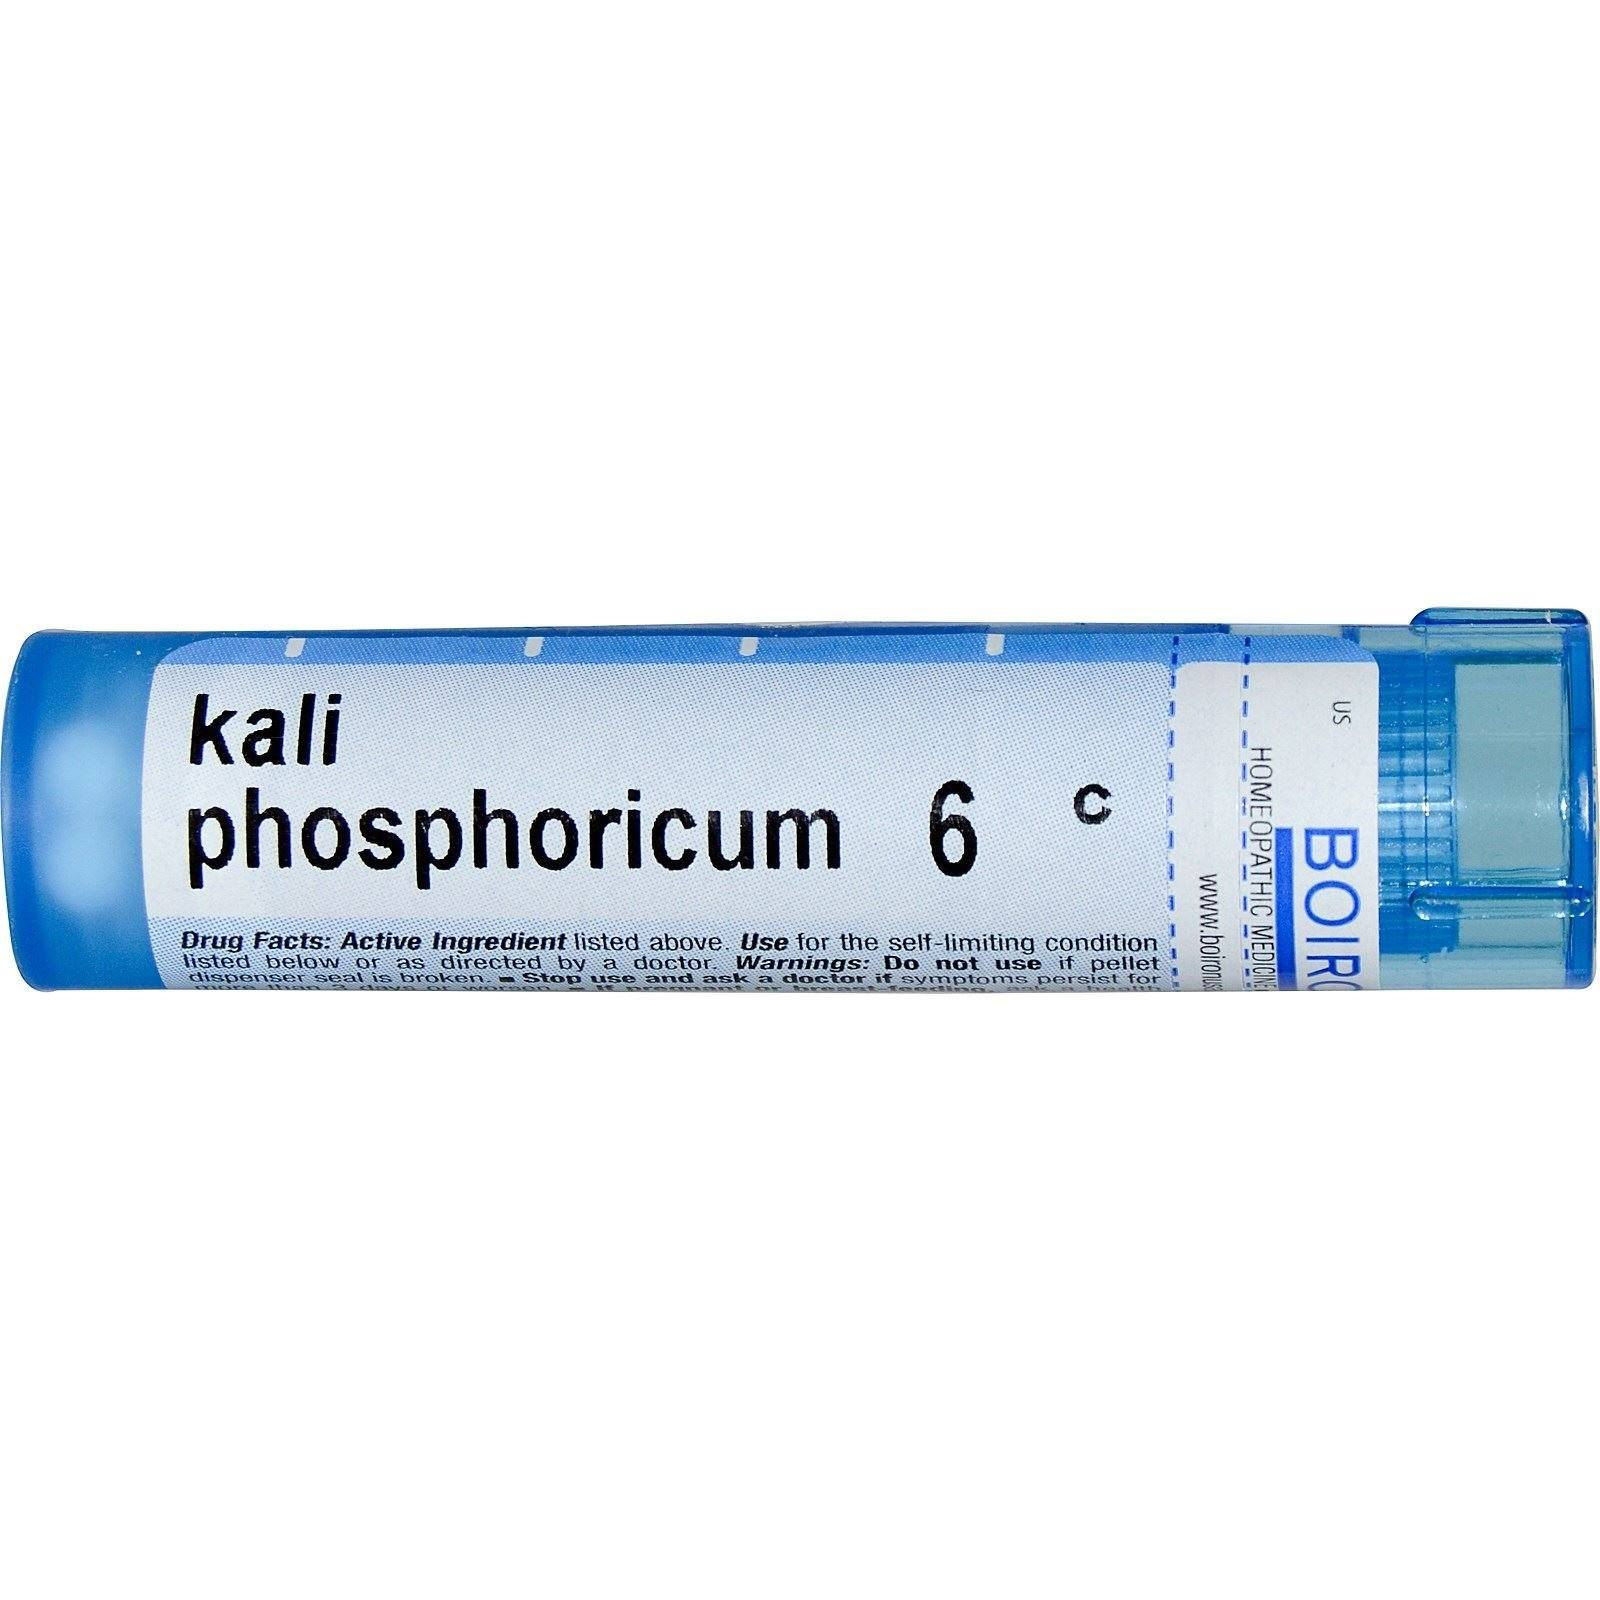 Supplements - Boiron - Kalium Phosphoricum 6CH, 80 Pellets